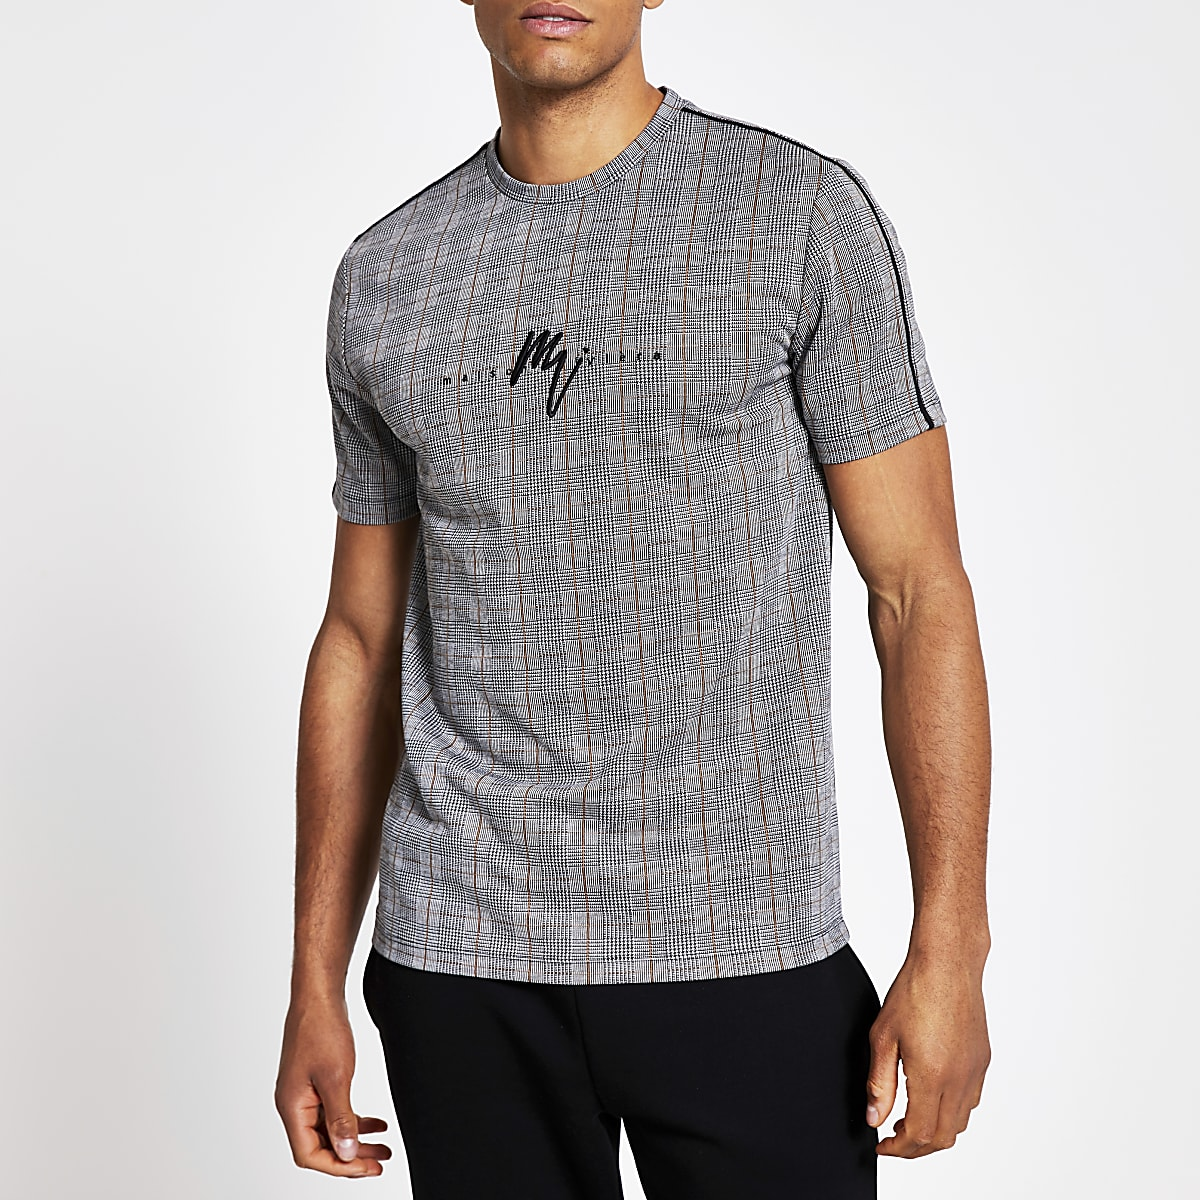 Maison Riviera grey muscle fit check T-shirt